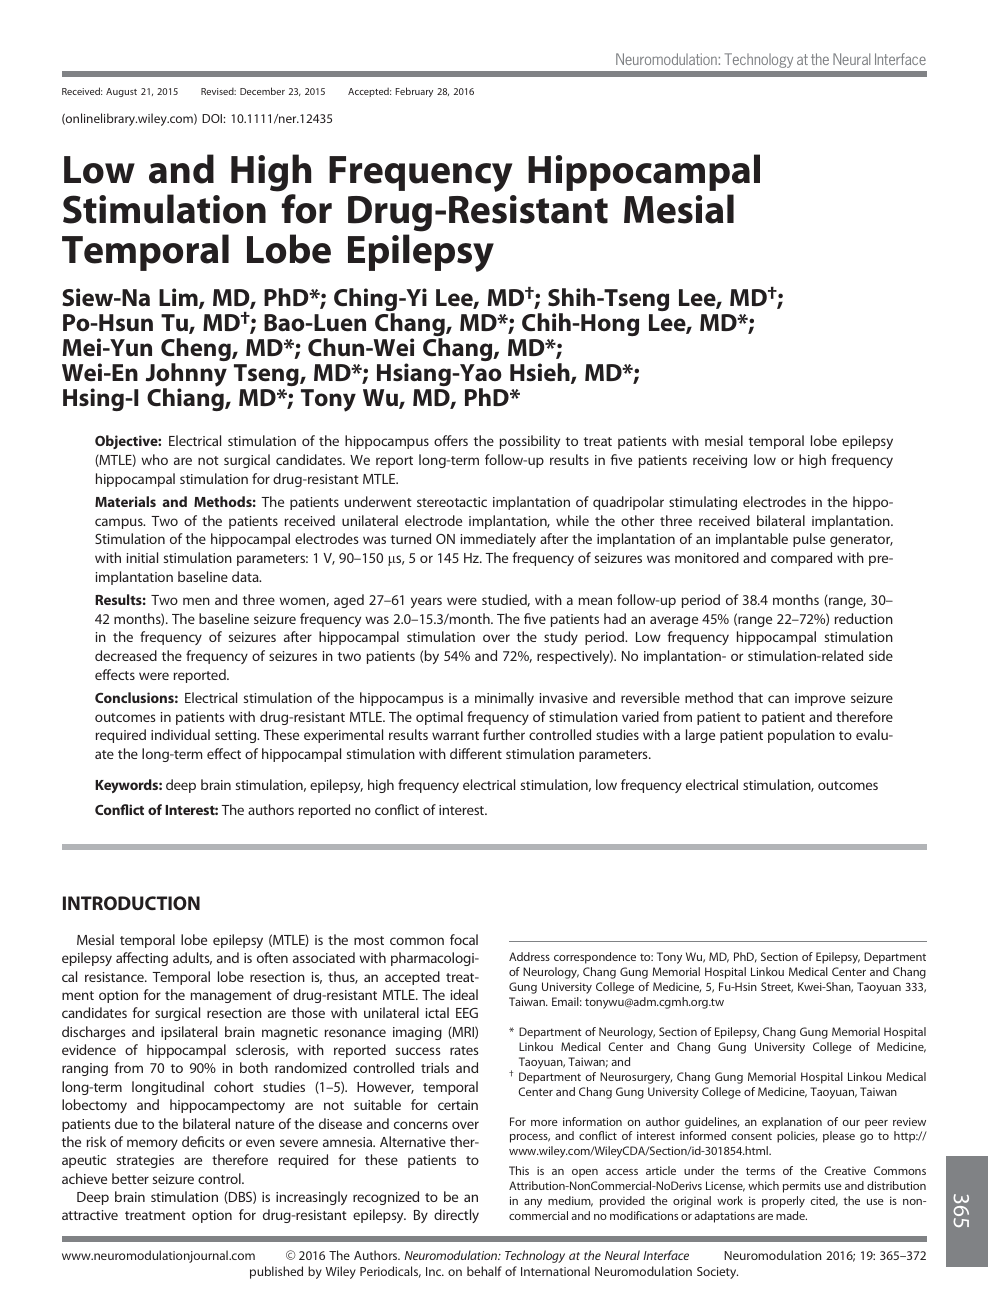 Low and High Frequency Hippocampal Stimulation for Drug-Resistant